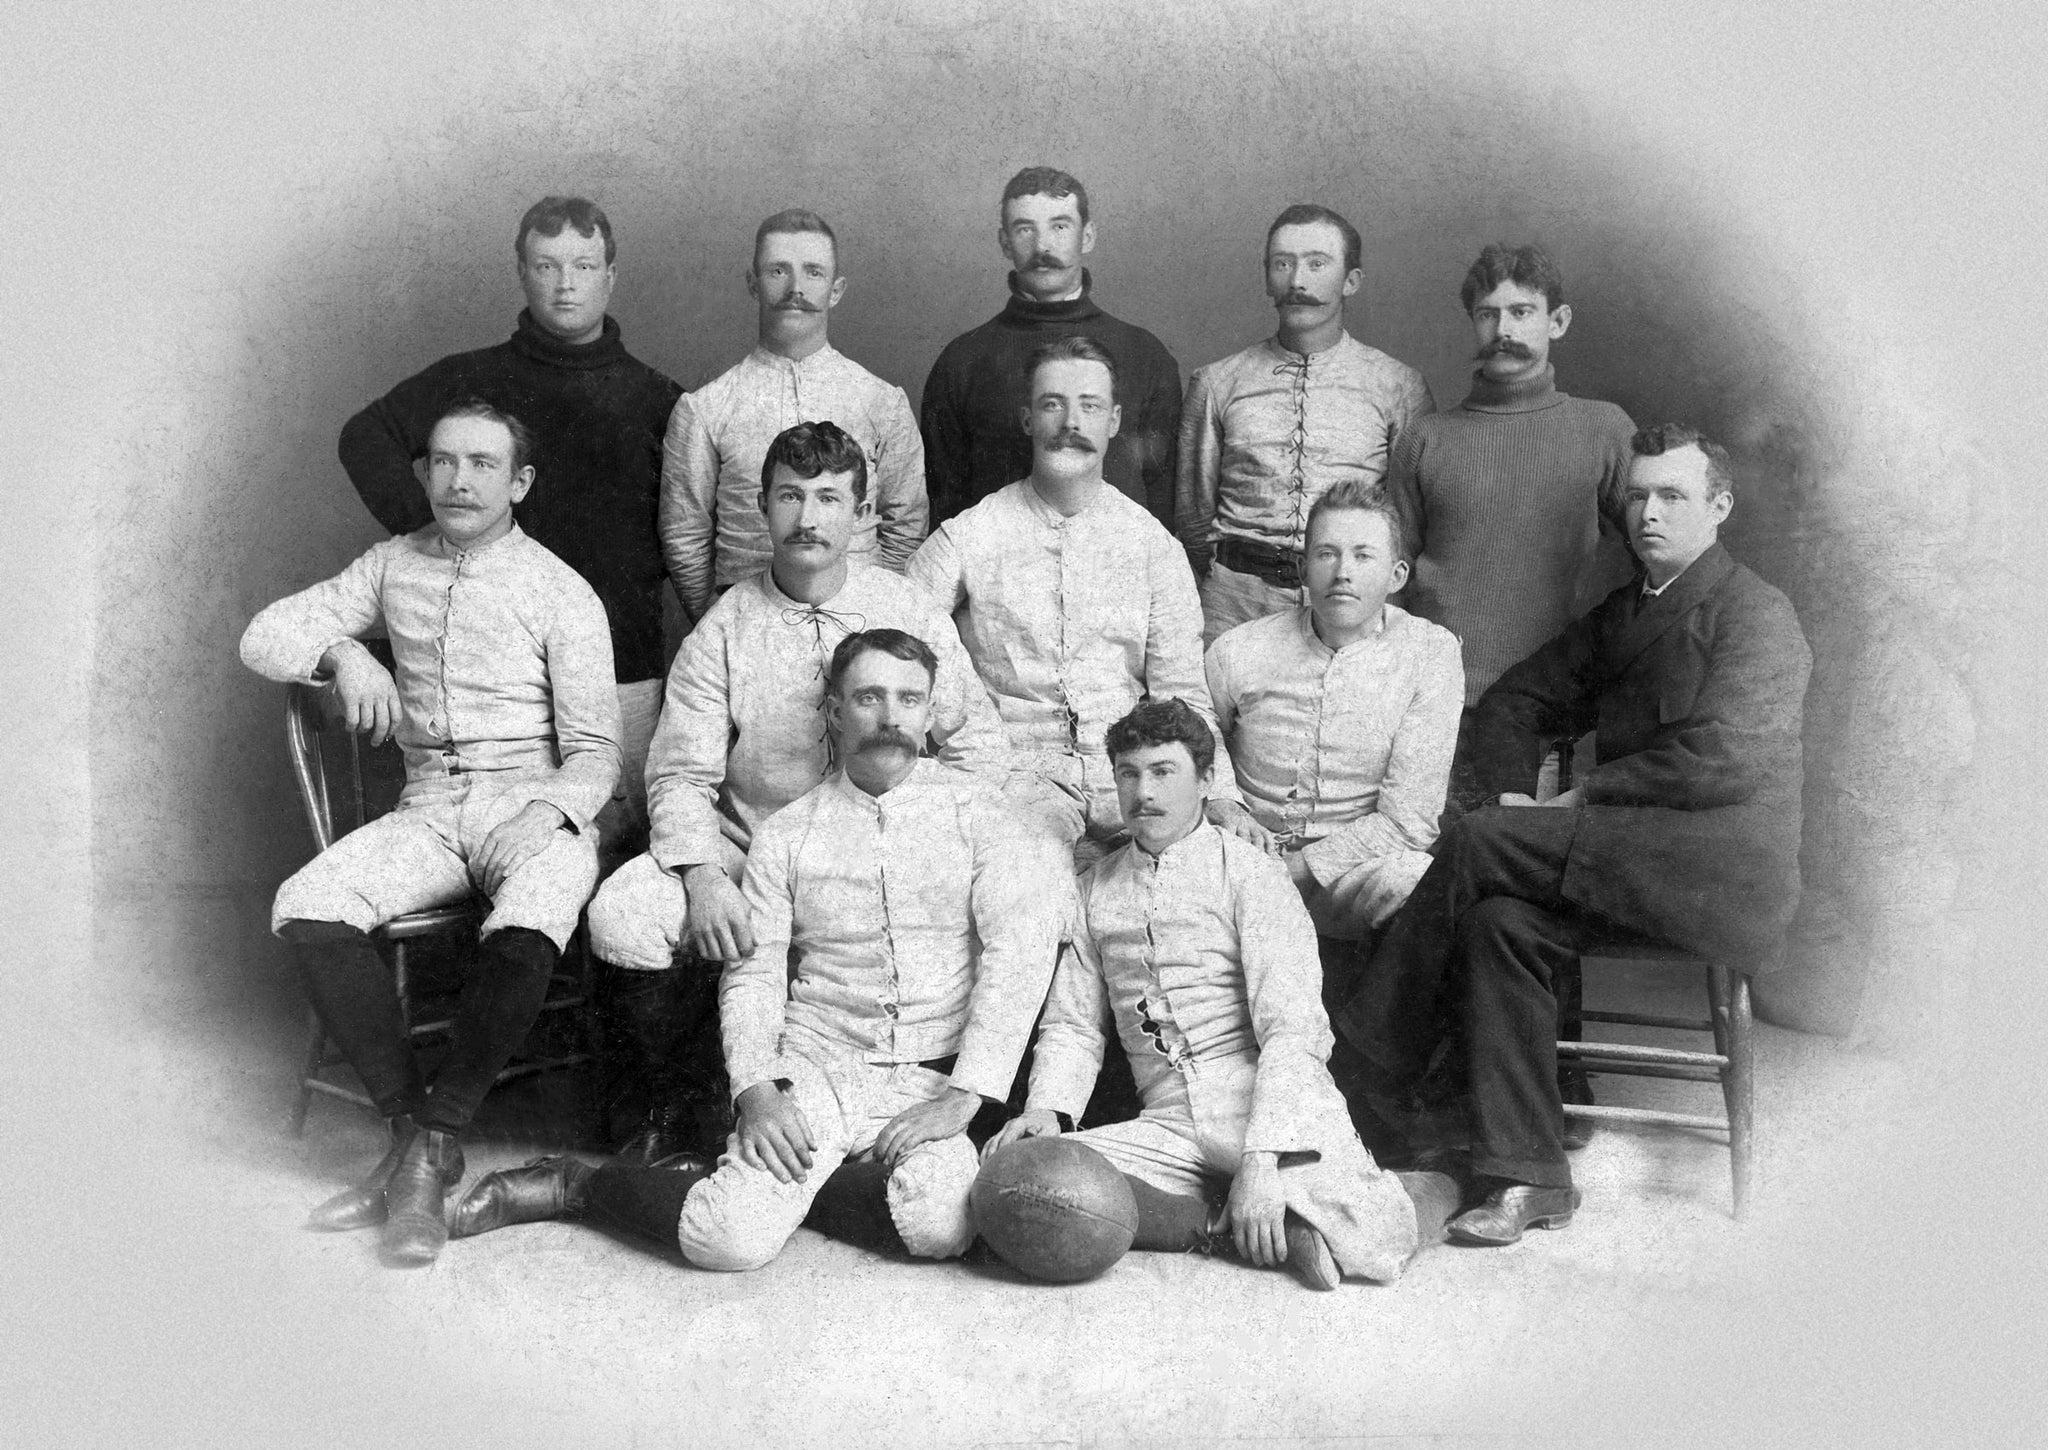 The Farragut Athletic Club football team, circa 1895. Those identified are Ed Cavanaugh, Charles Lee, Thomas McGuire, Joseph McEnry, George Burnap, John Hurley, John Scully, Joseph Walsh, J. W. Cavanaugh, P. W. Brown, and P. Bagan. -- Courtesy of the Vallejo Naval and Historical Museum